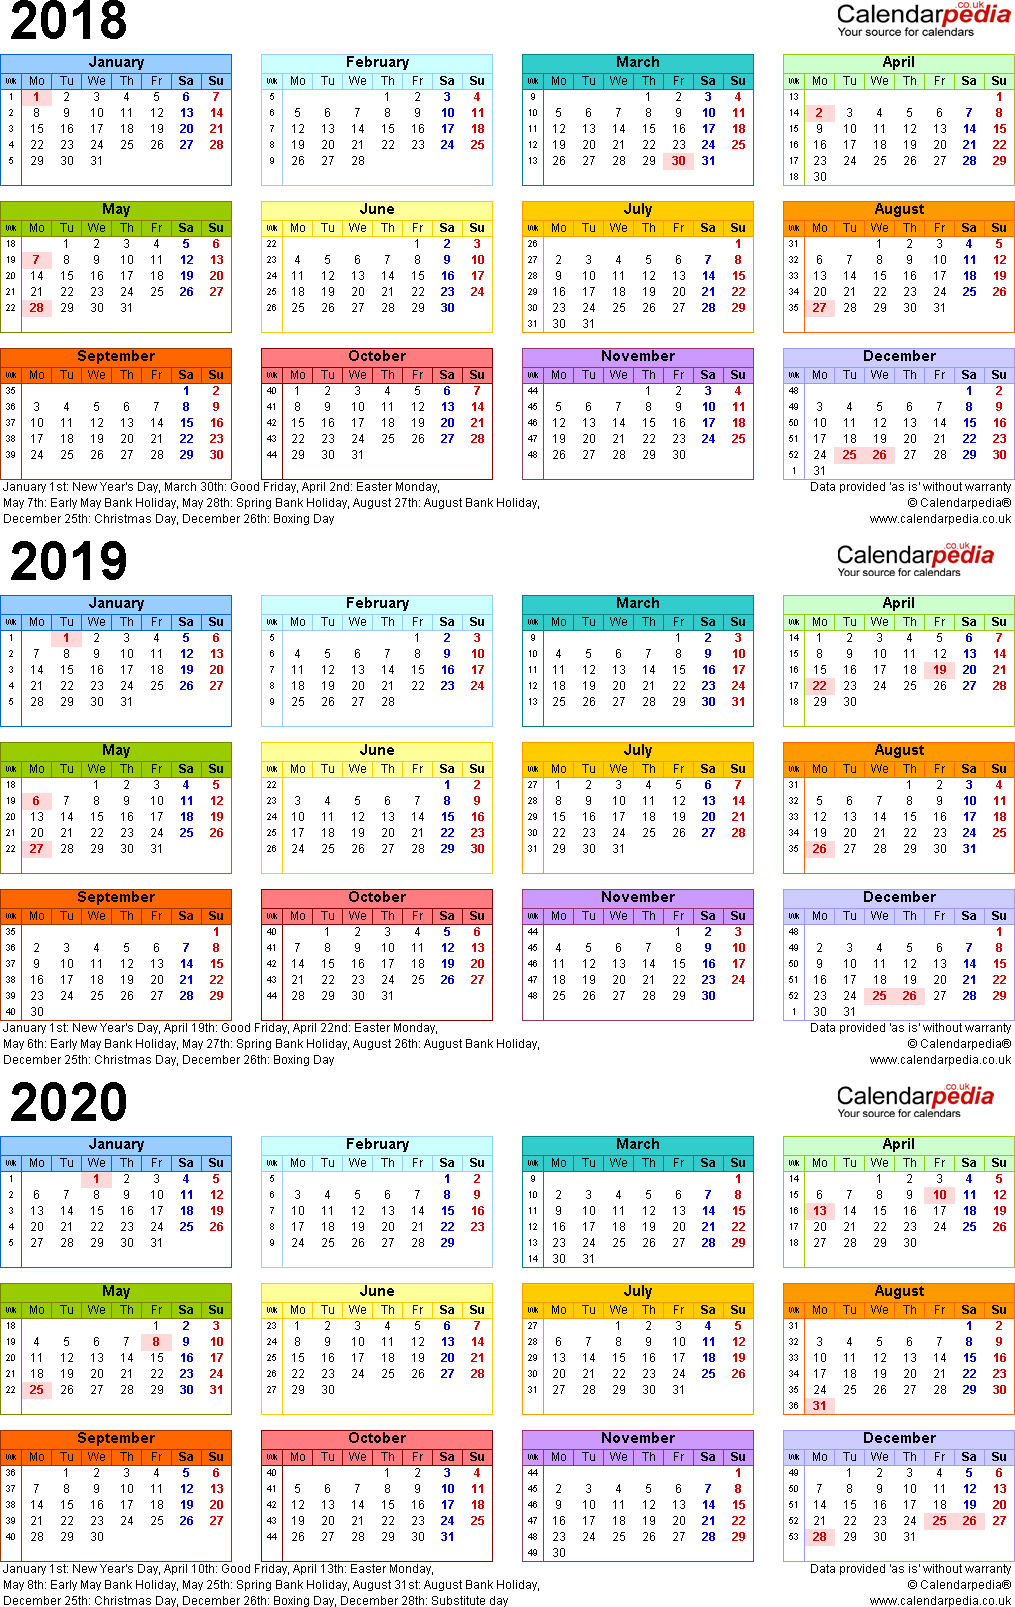 Download Template 3: Word template for three year calendar 2018-2020 in colour (portrait orientation, 1 page, A4)